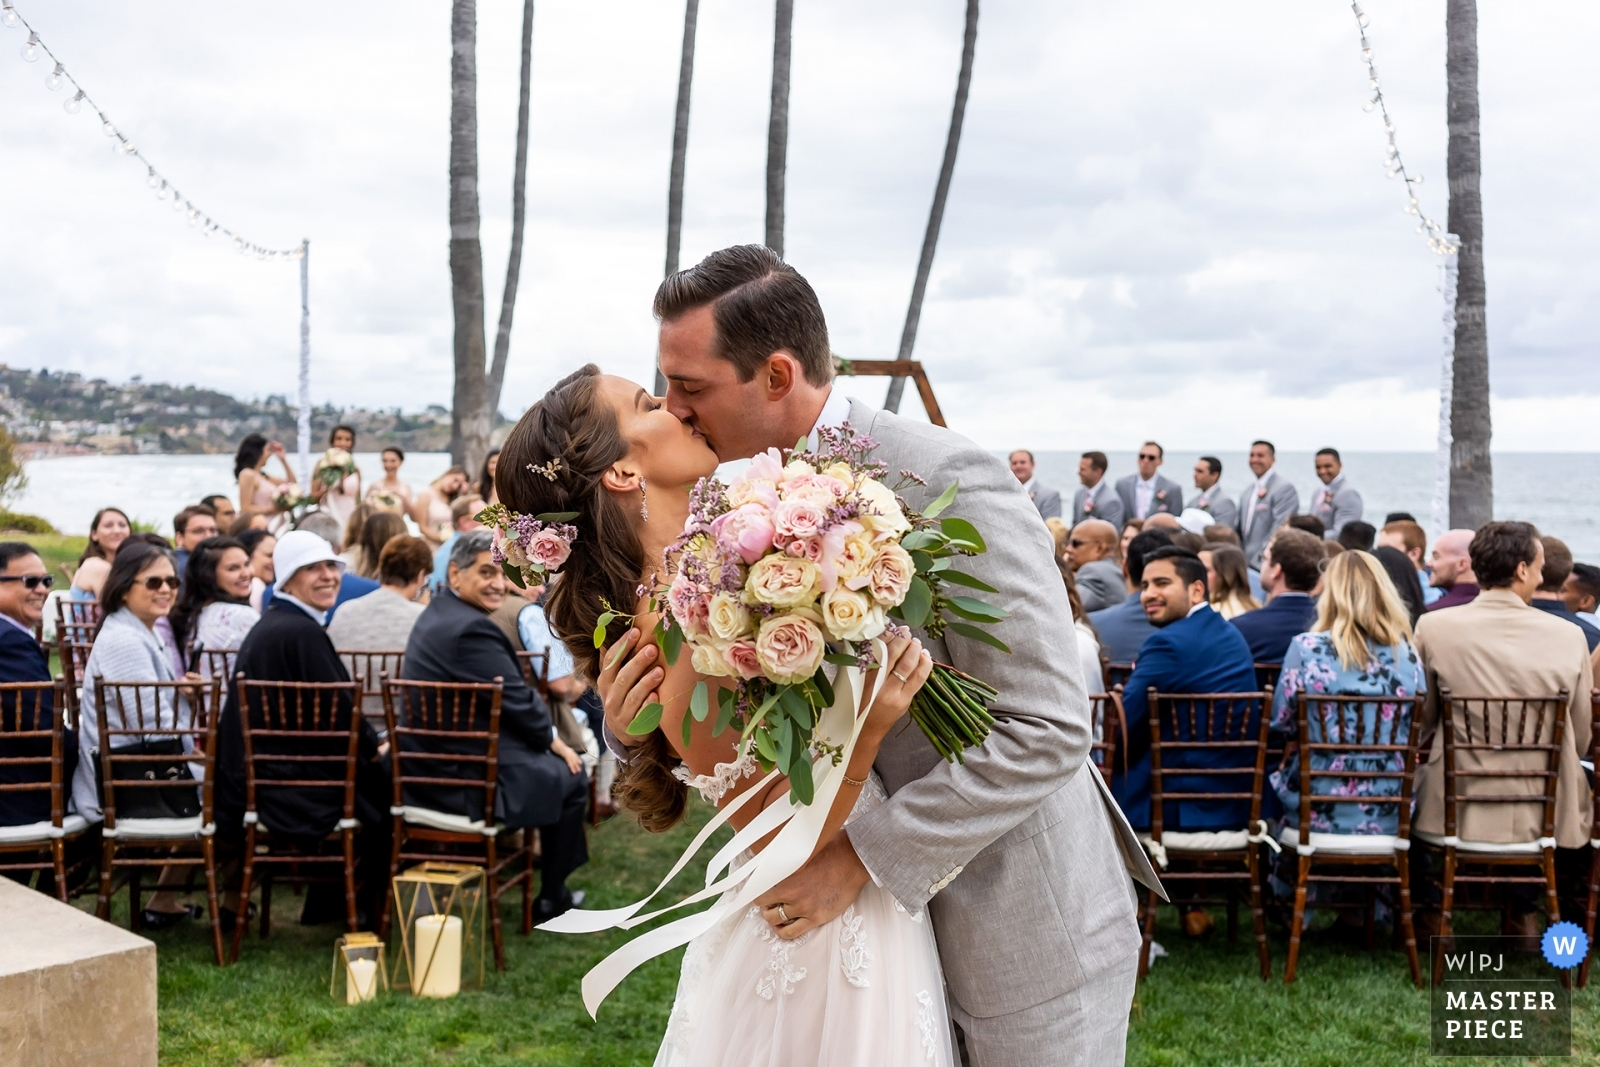 The bride and groom kiss after their wedding ceremony. - San Diego, California - Southern Wedding Photography -  | Scripps Seaside Forum, La Jolla, California.